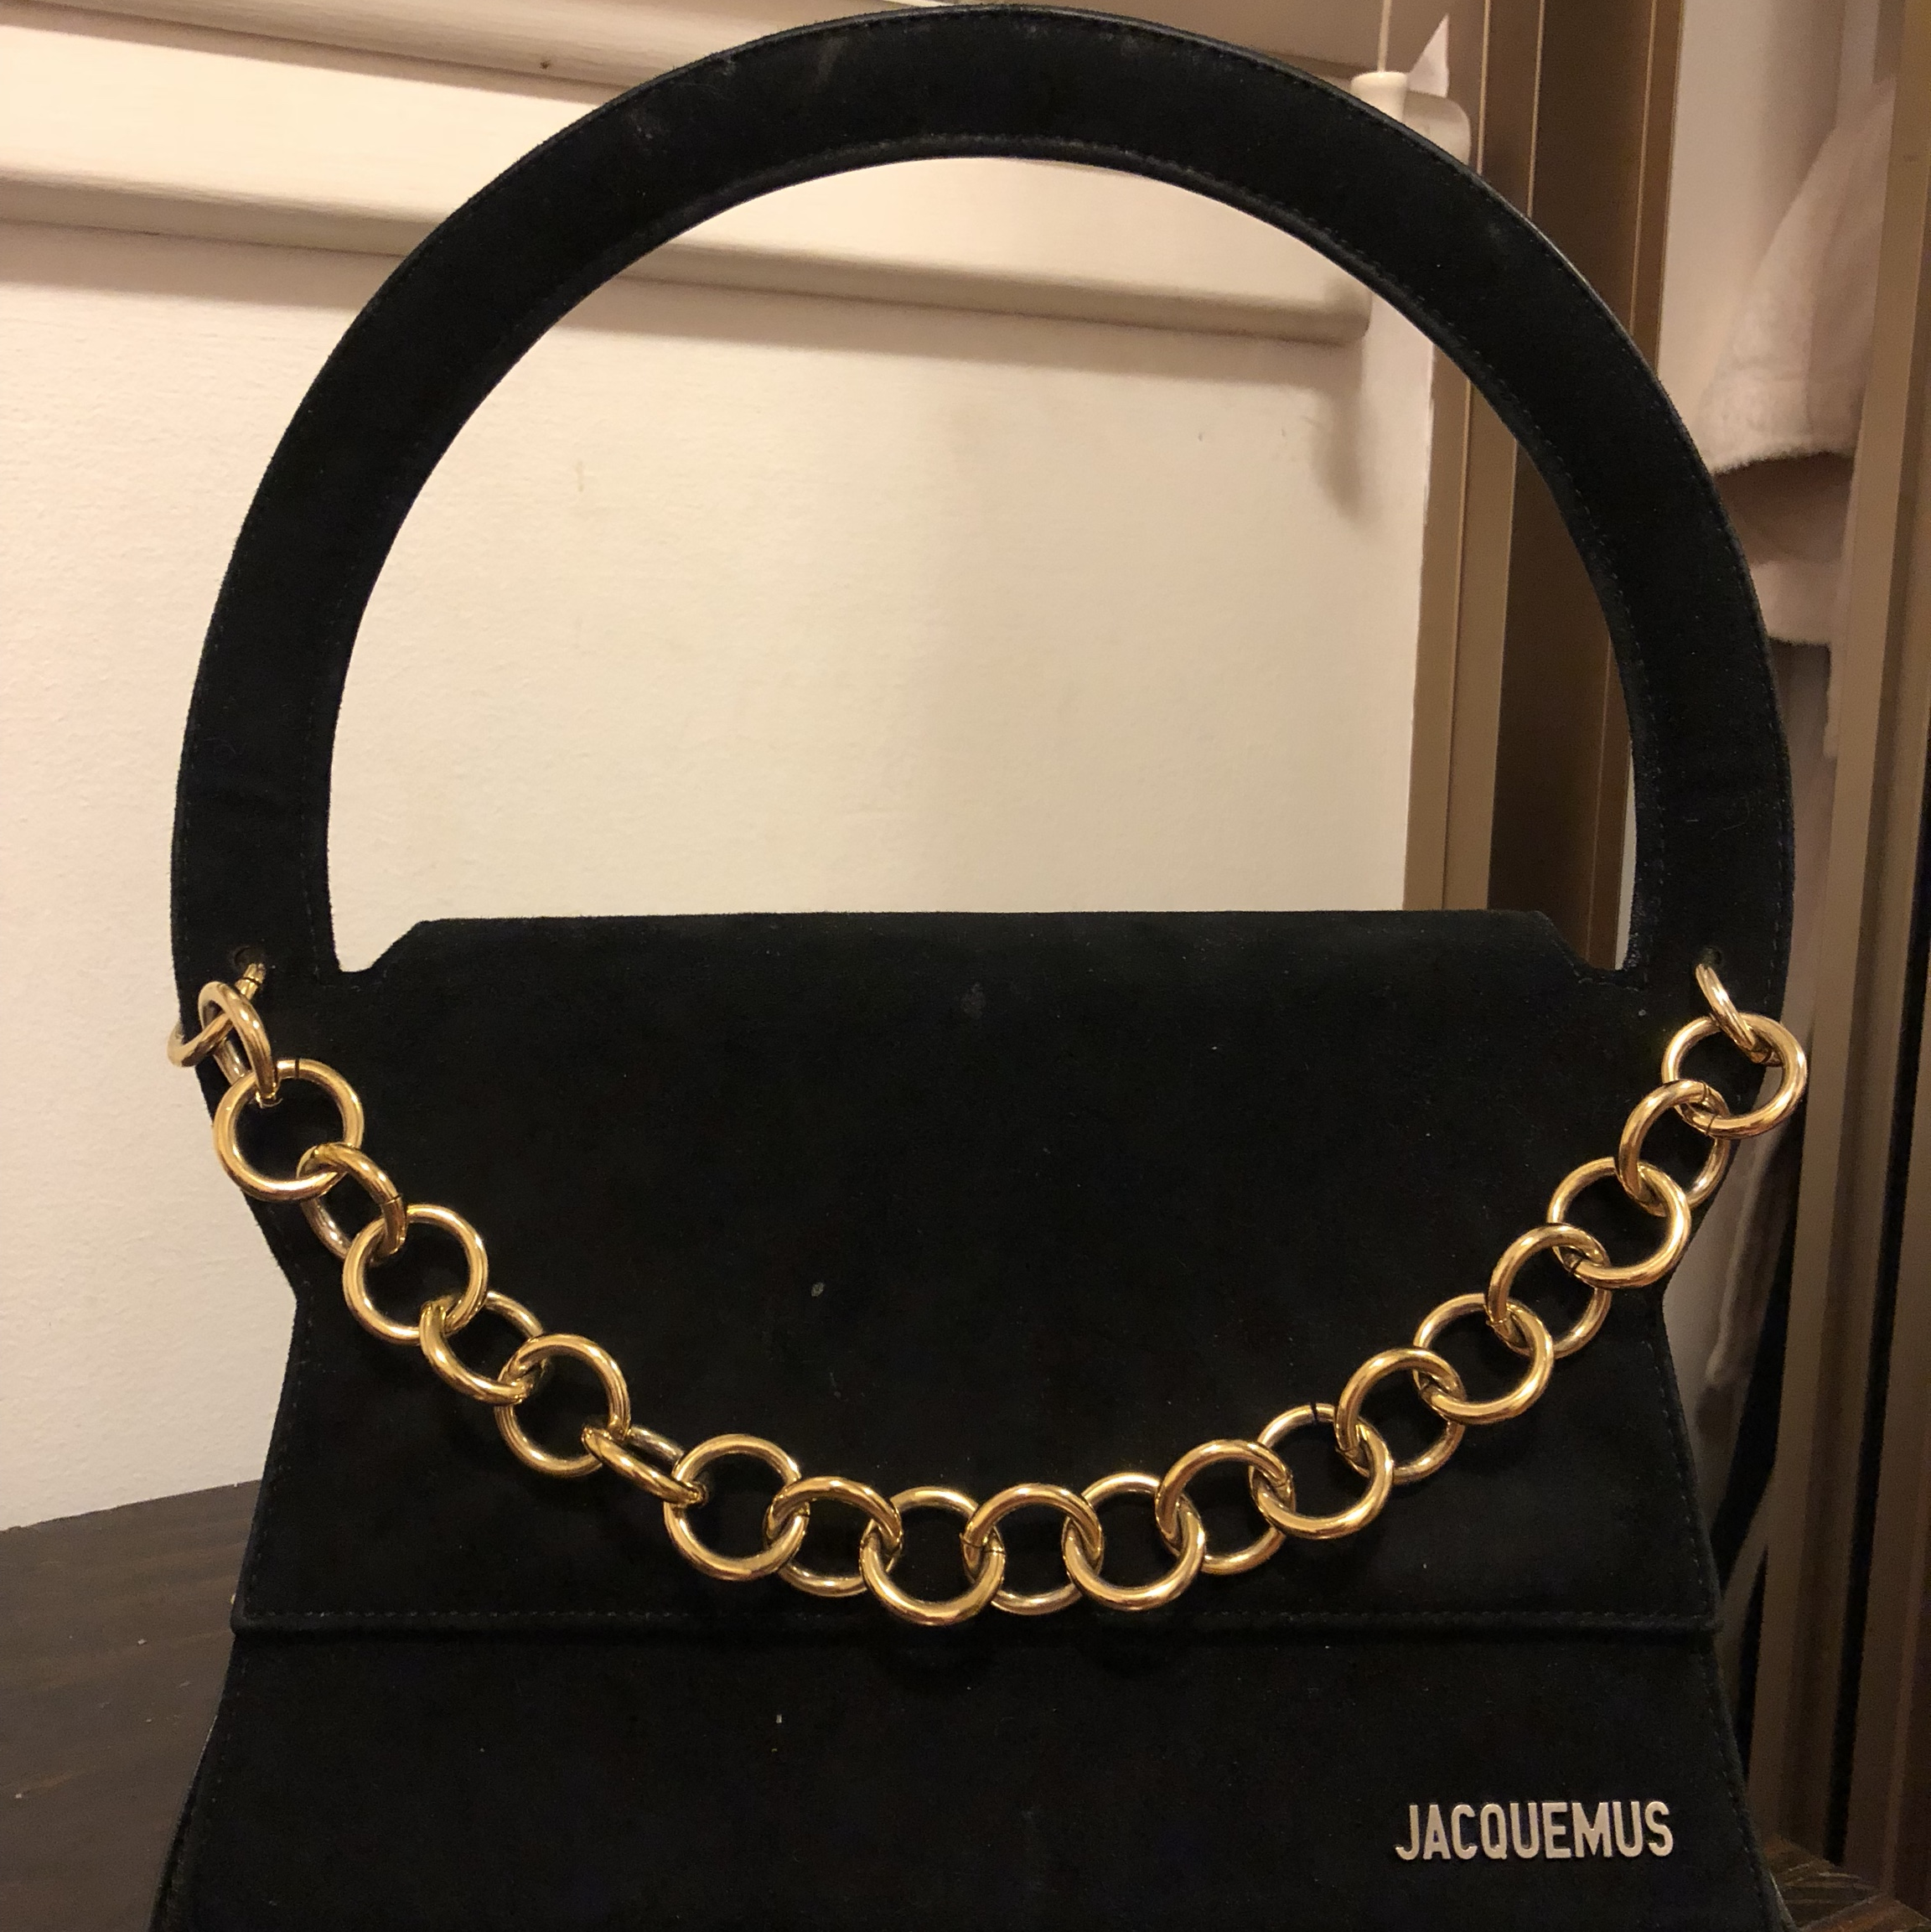 Bag Wear Sac Jacquemus Le Depop Rond On BagGeneral 8wNvmn0